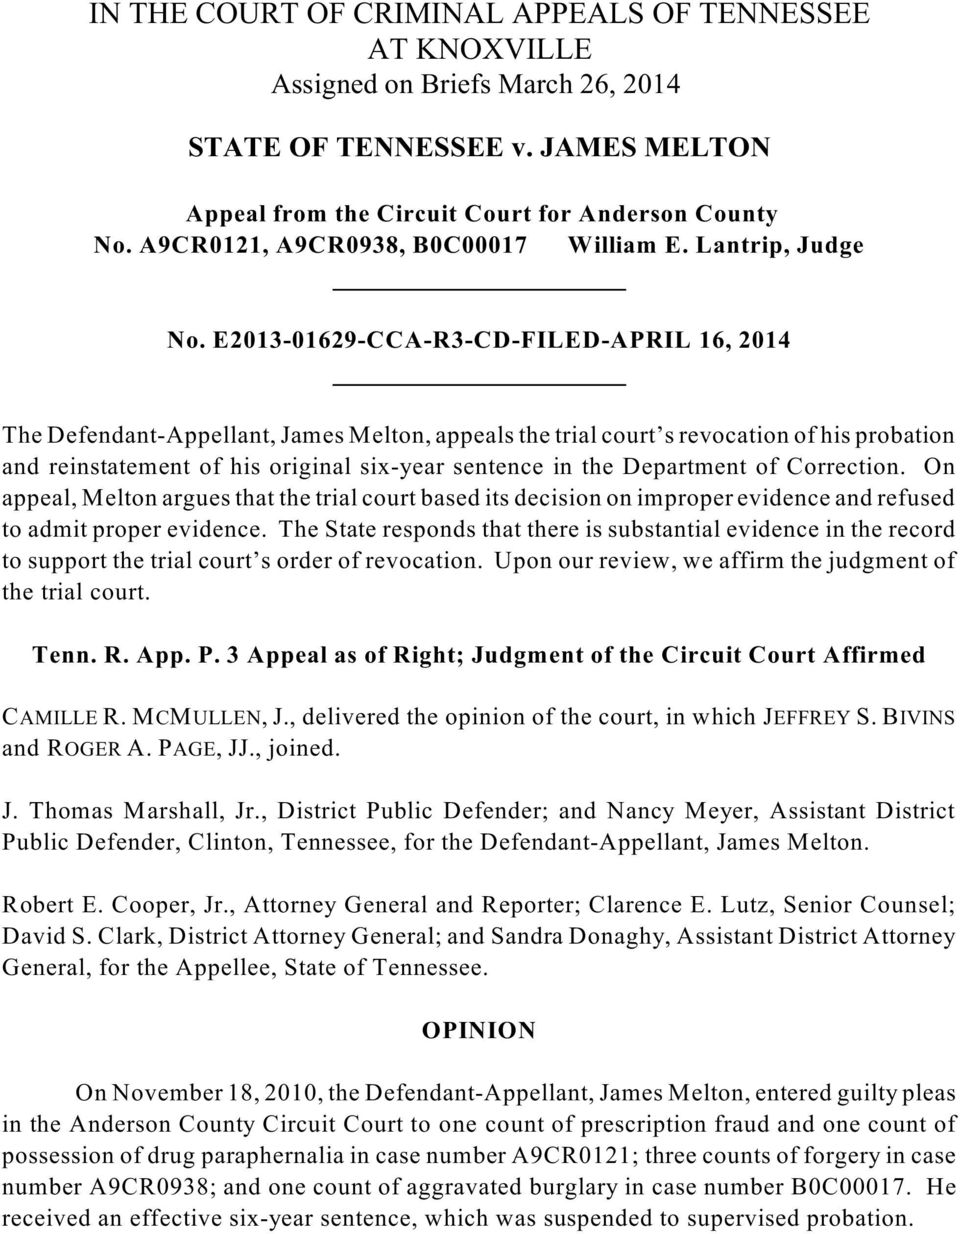 E2013-01629-CCA-R3-CD-FILED-APRIL 16, 2014 The Defendant-Appellant, James Melton, appeals the trial court s revocation of his probation and reinstatement of his original six-year sentence in the